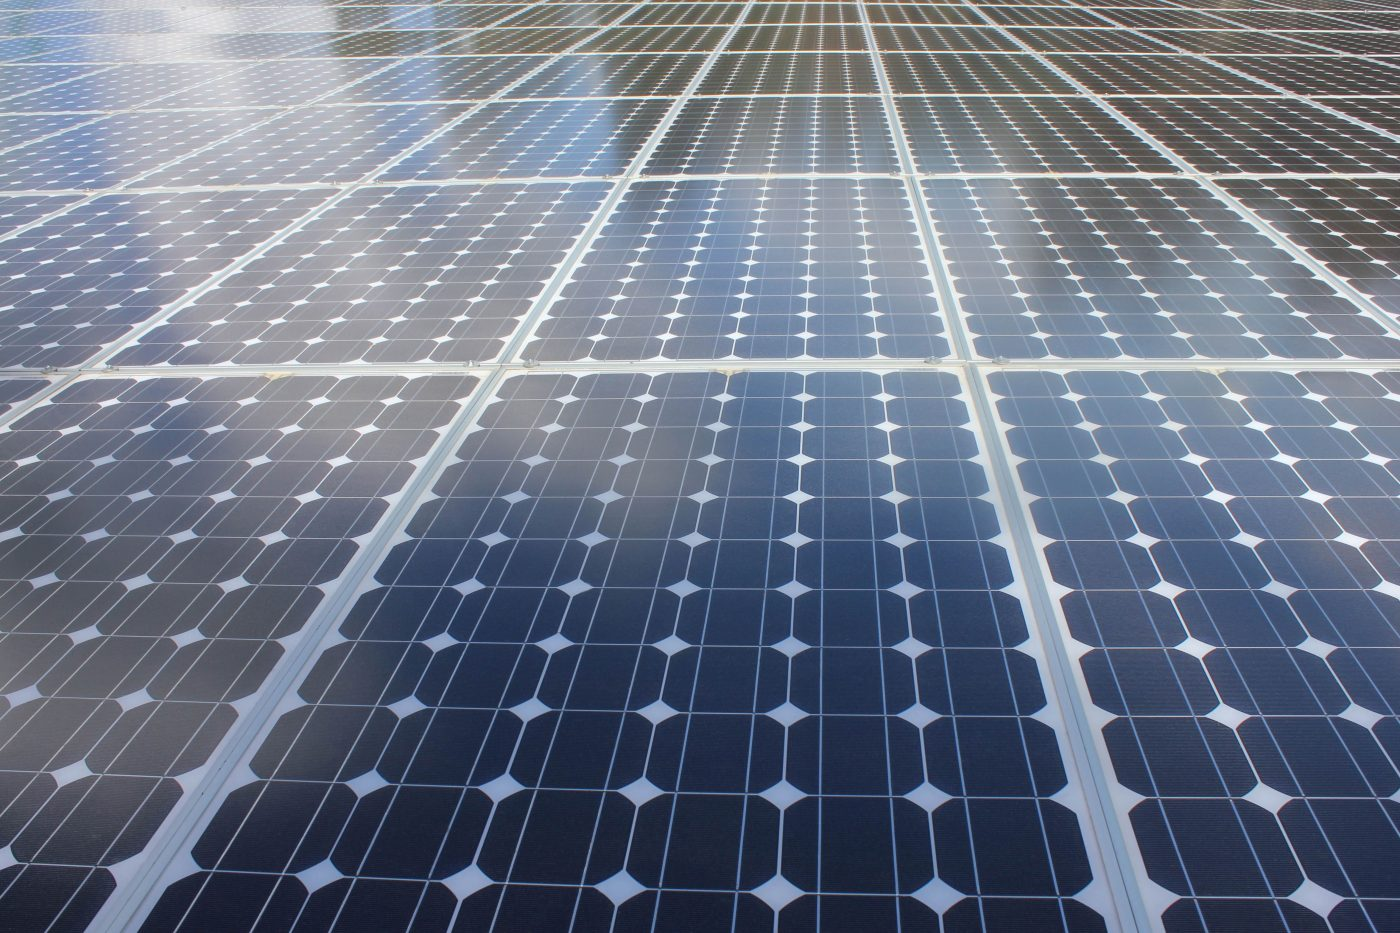 solar-panels-reflecting-the-sky-1203838, freeimages, by Debbie Mous